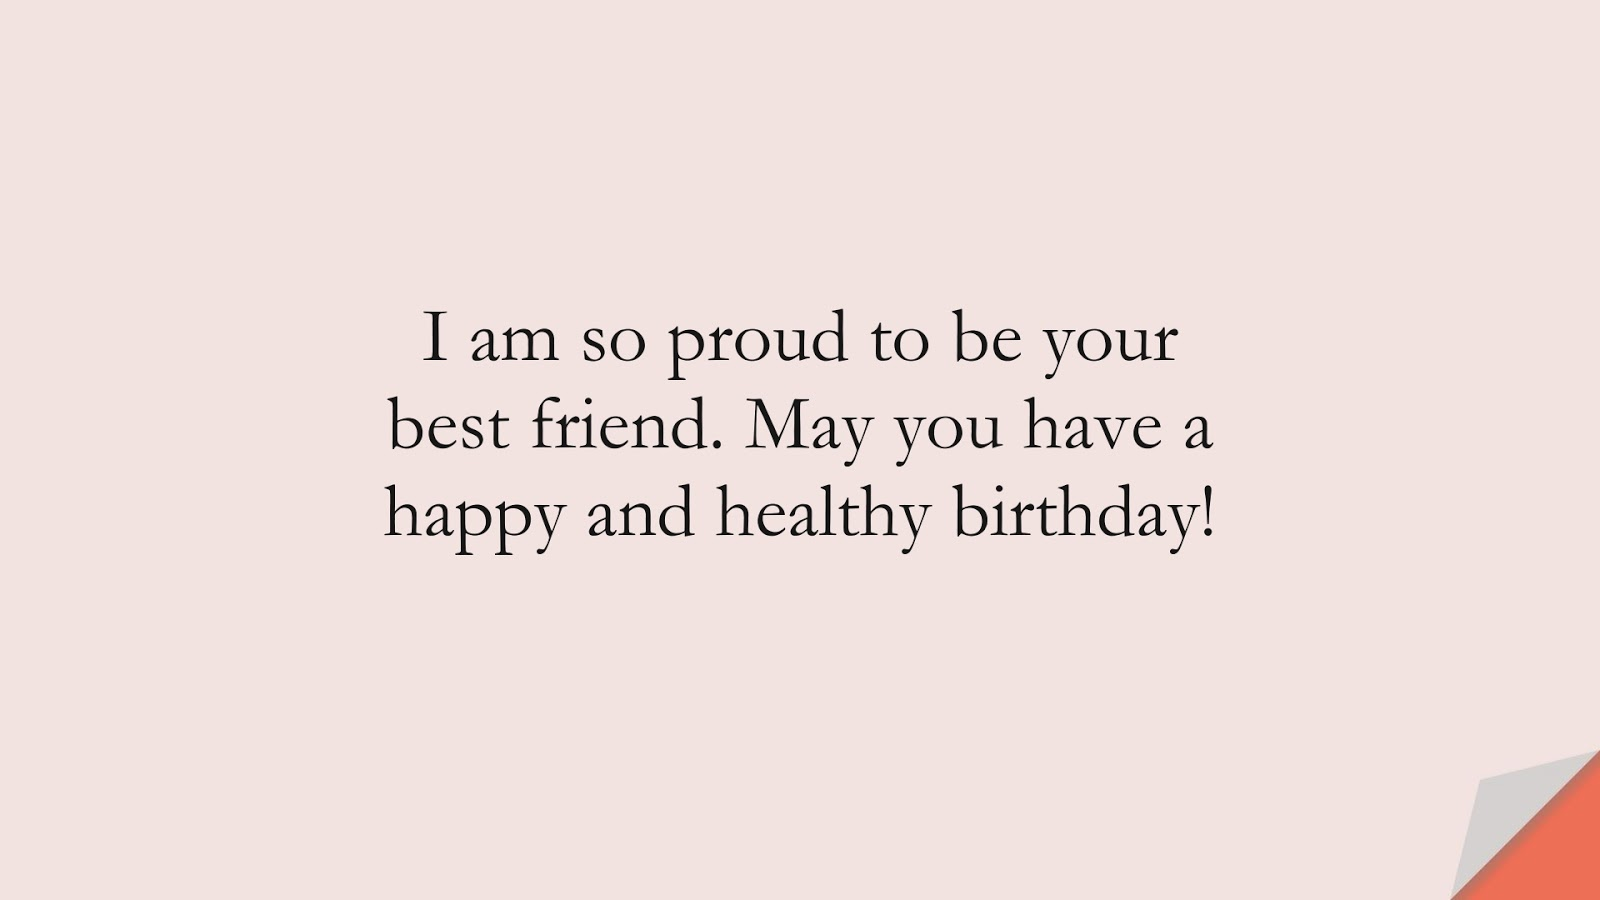 I am so proud to be your best friend. May you have a happy and healthy birthday!FALSE